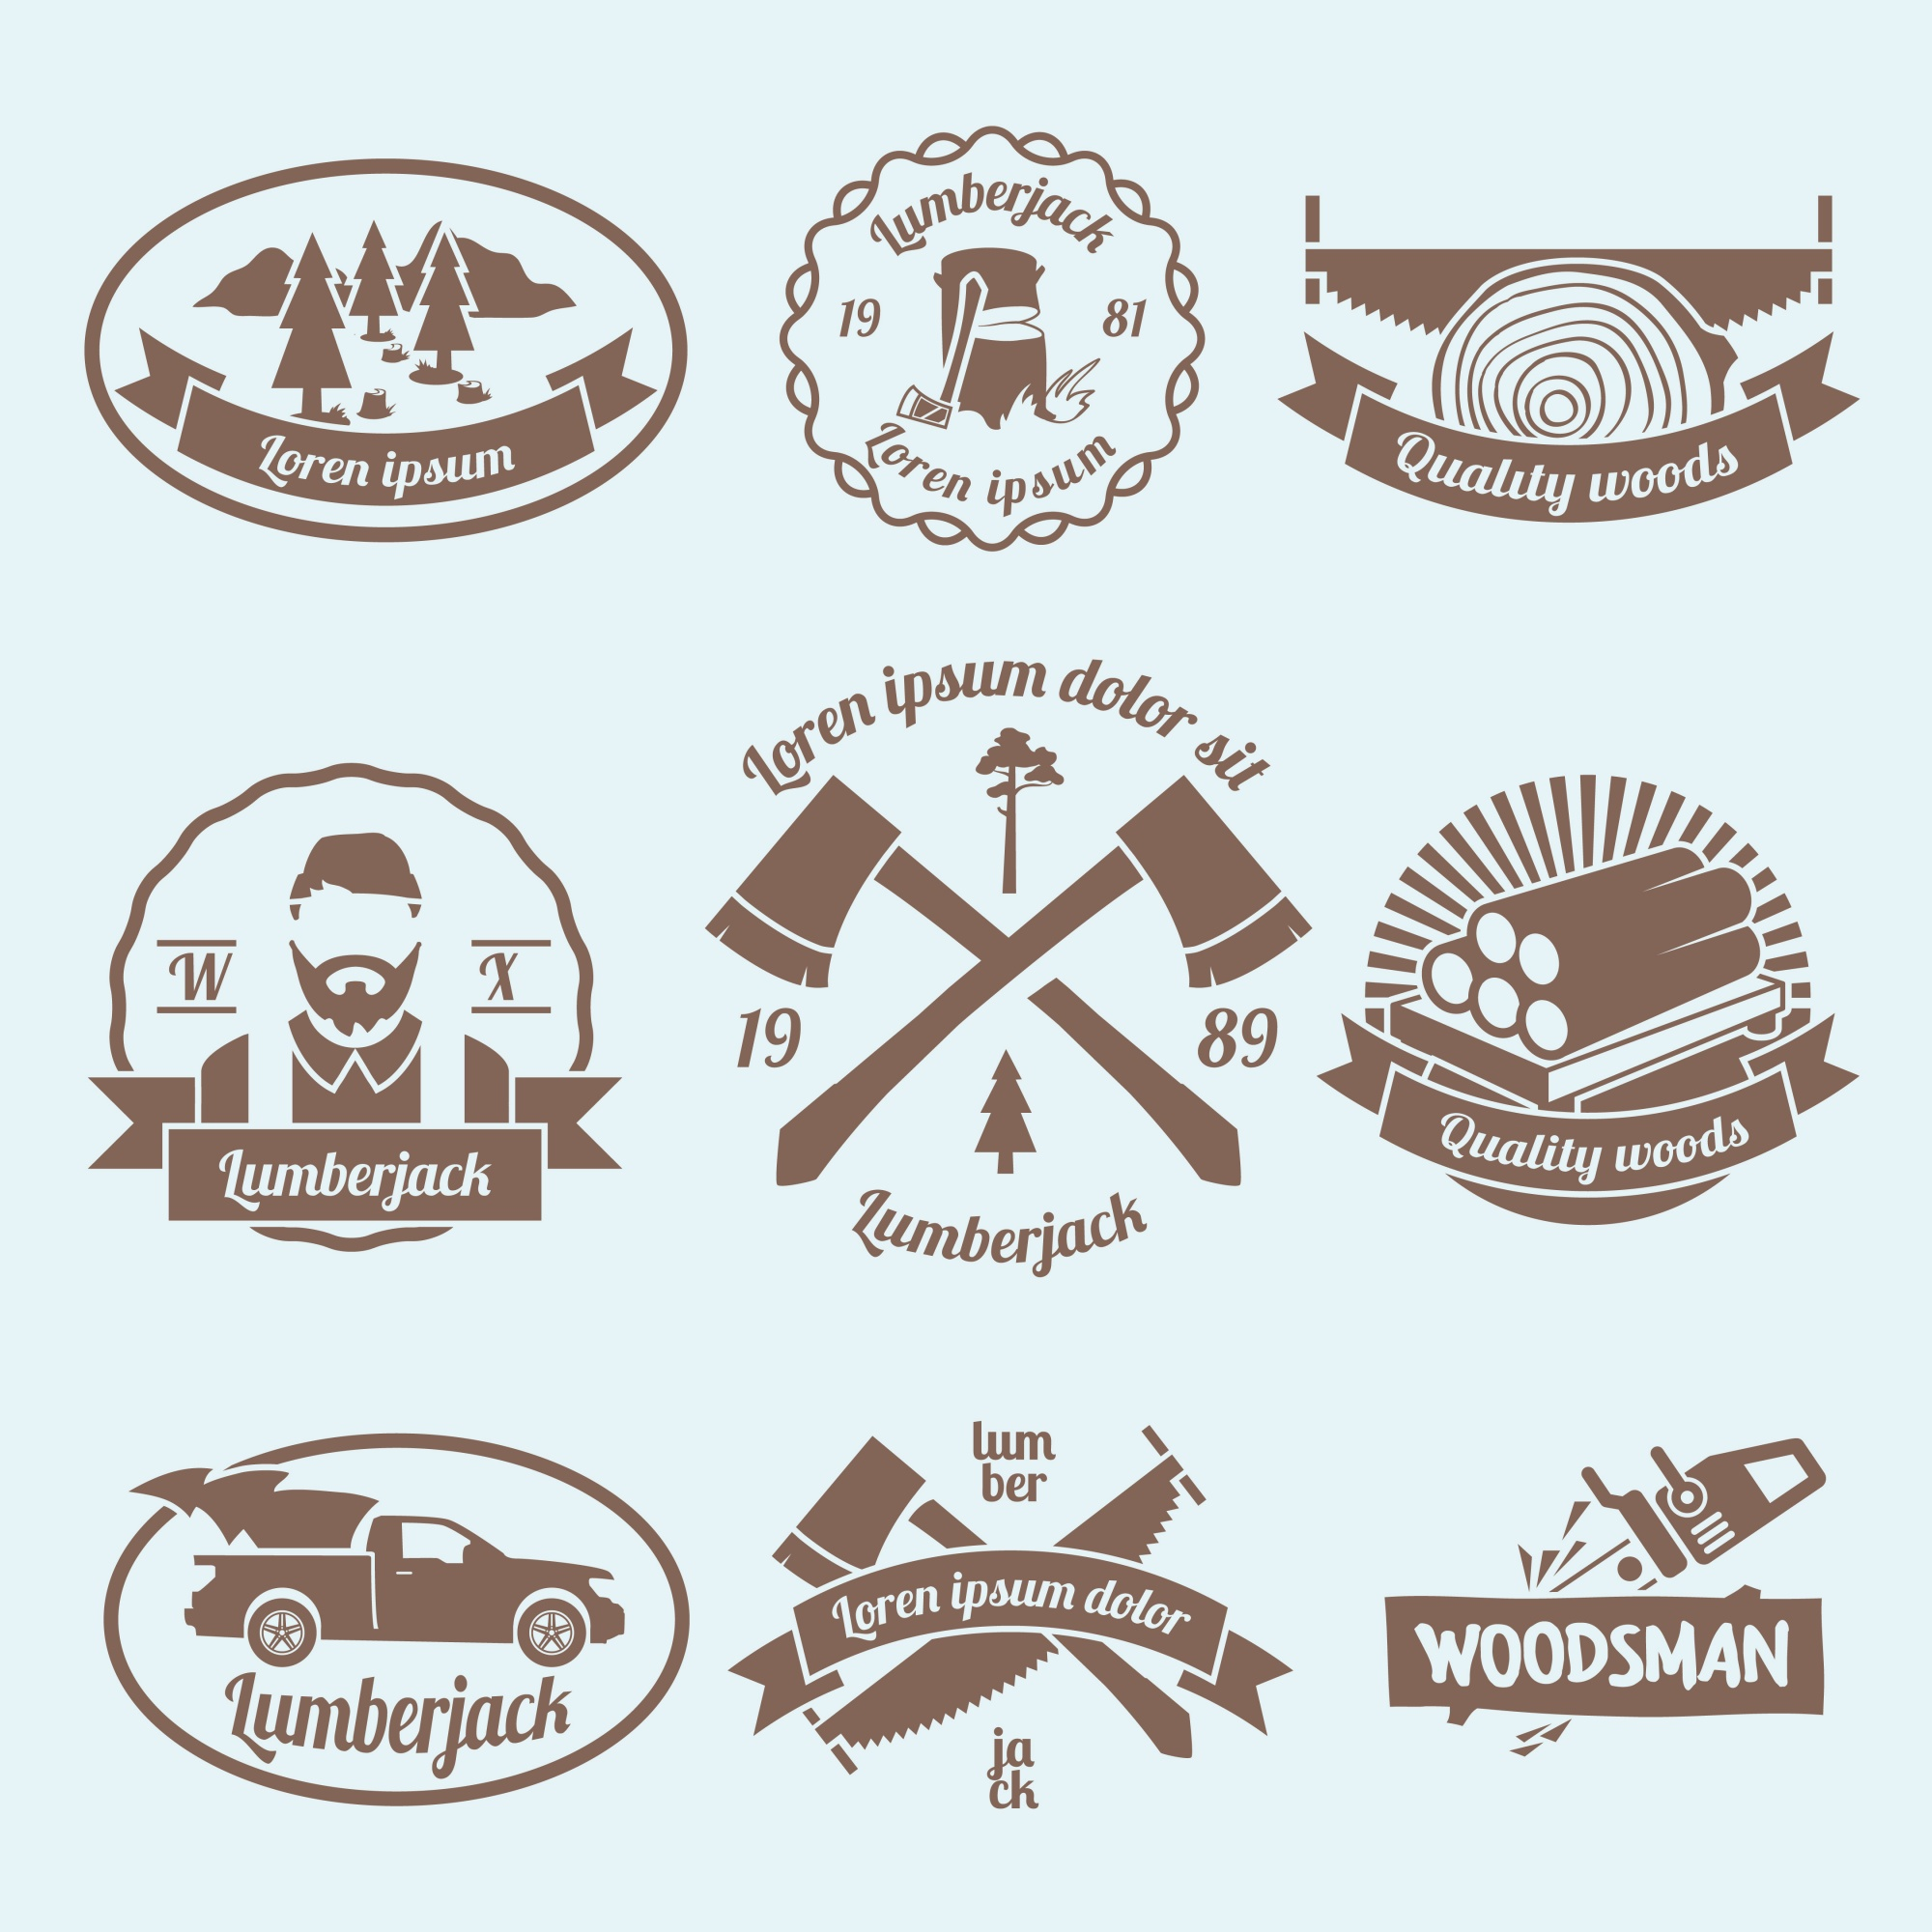 Lumberjack woodcutter labels set with carpentry tools and materials isolated vector illustration